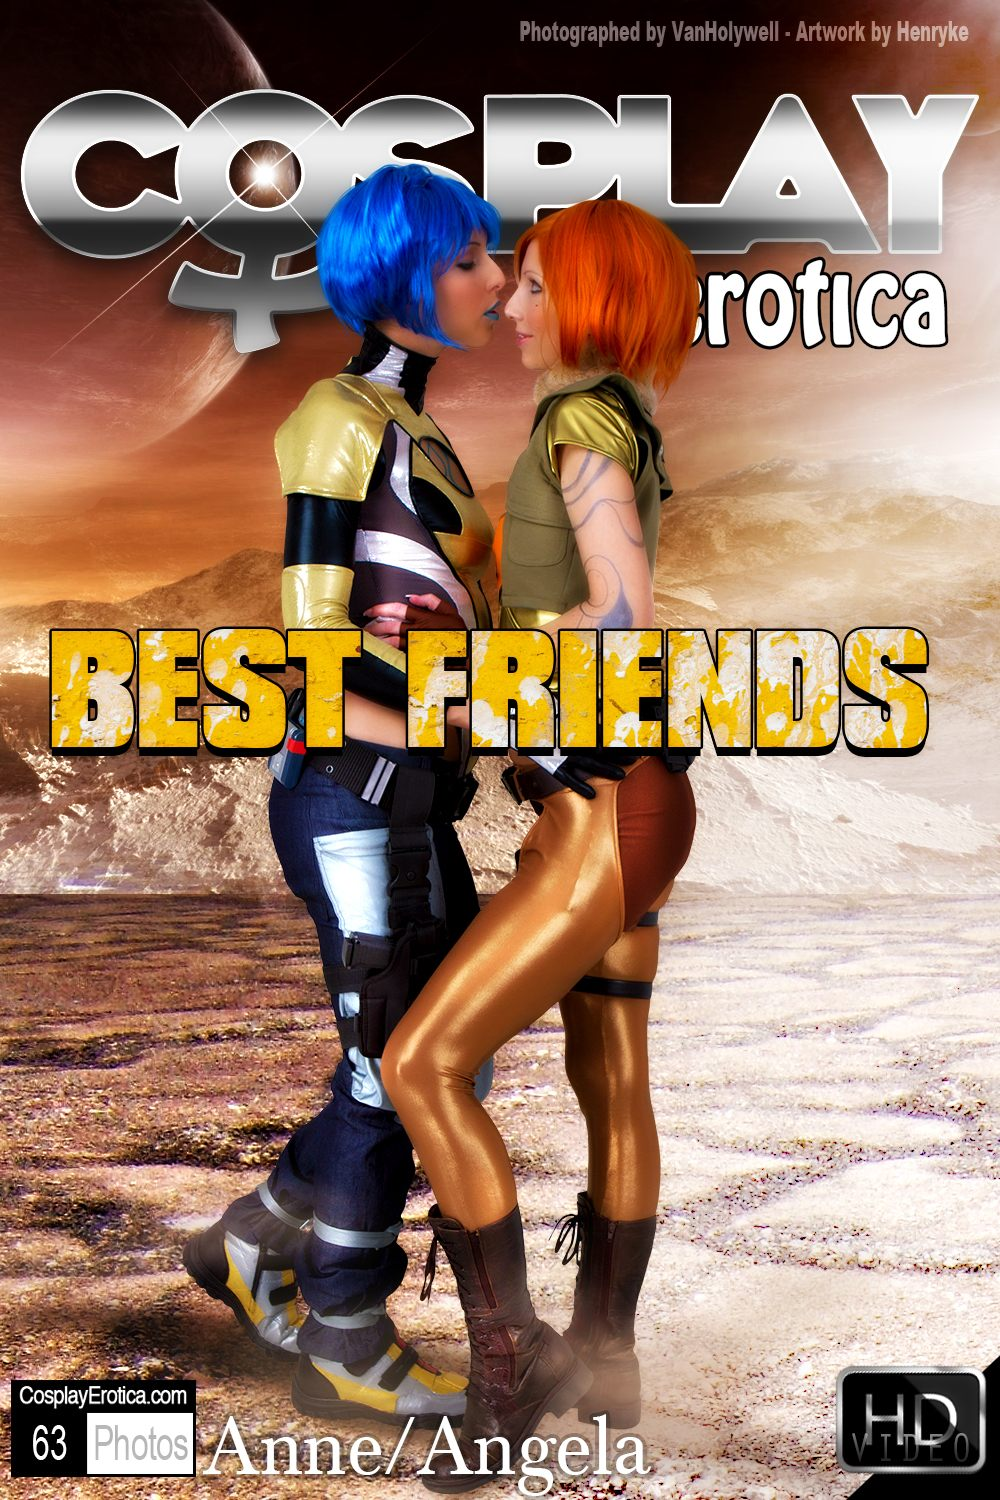 Amusing cosplay erotica lesbian porn that would